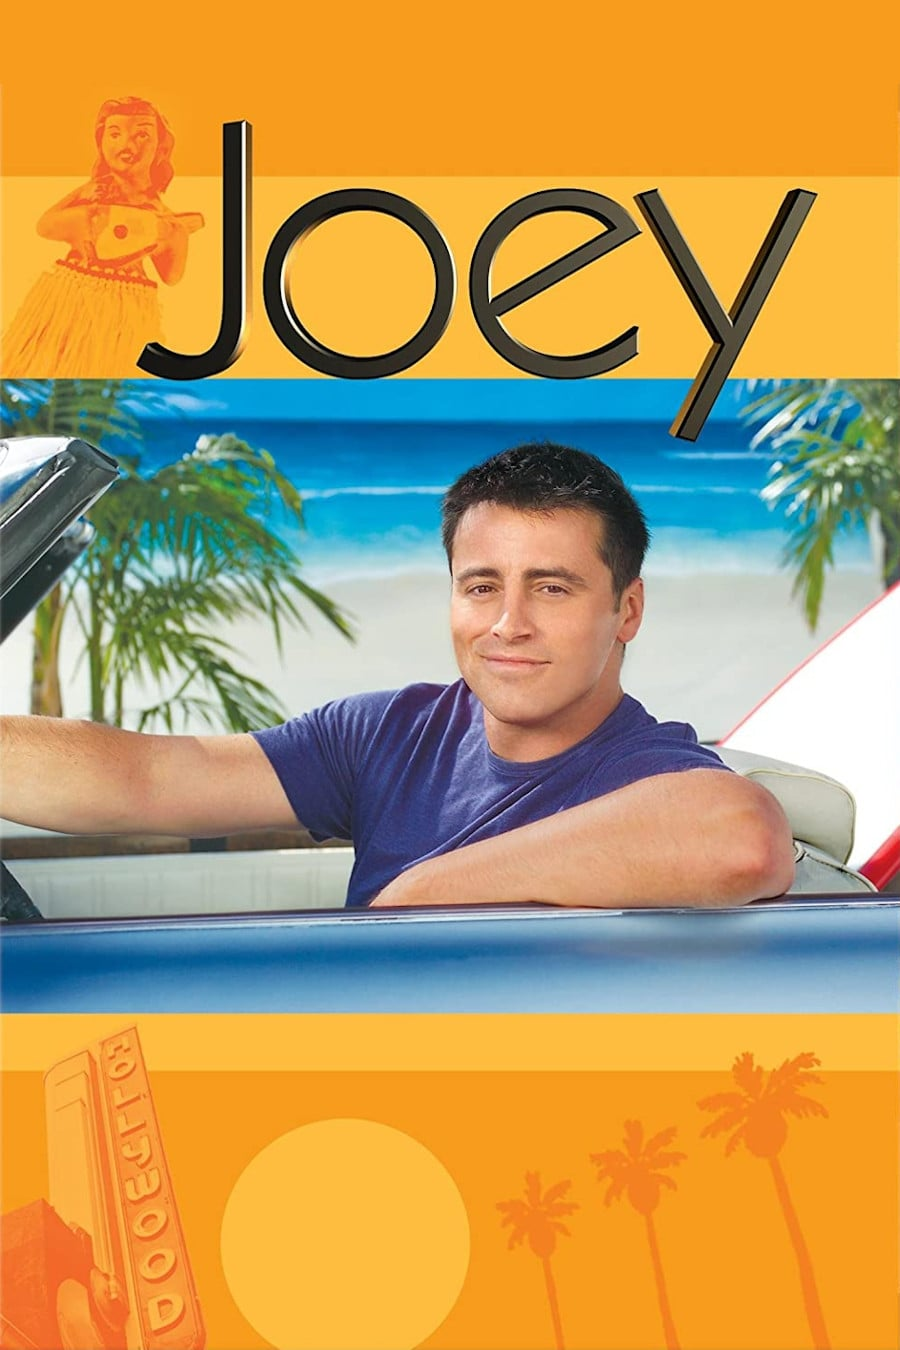 Joey TV Shows About Uncle Nephew Relationship